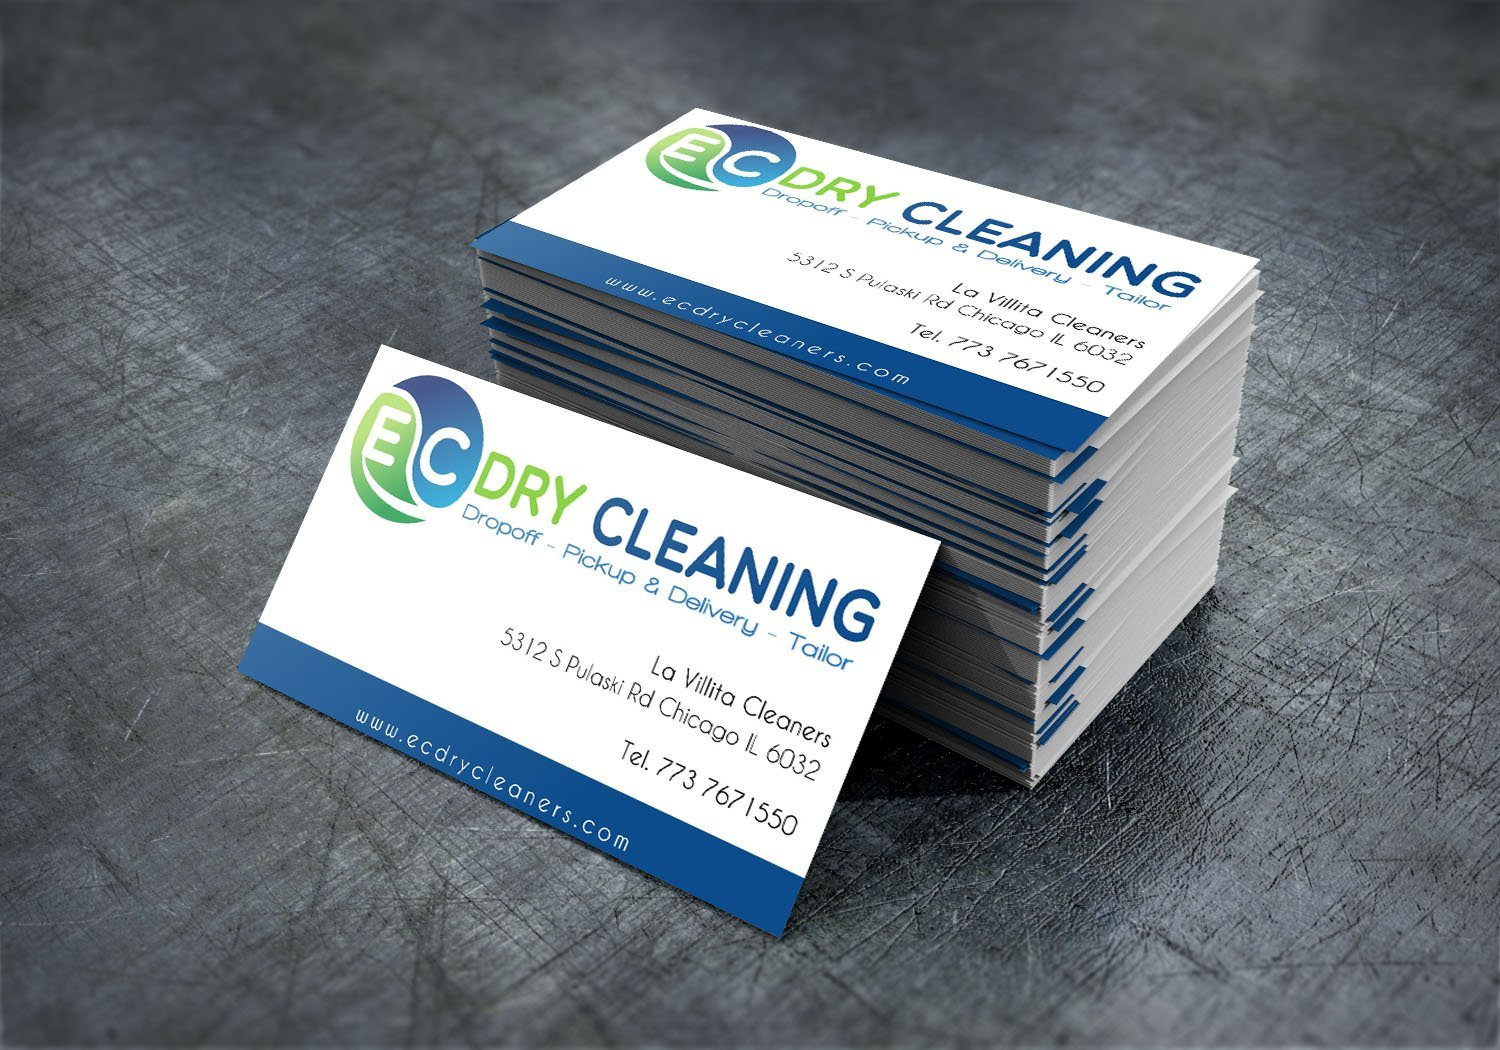 EC Dry Cleanning – Business Cards | Handcut Designs - Chicago Web Design